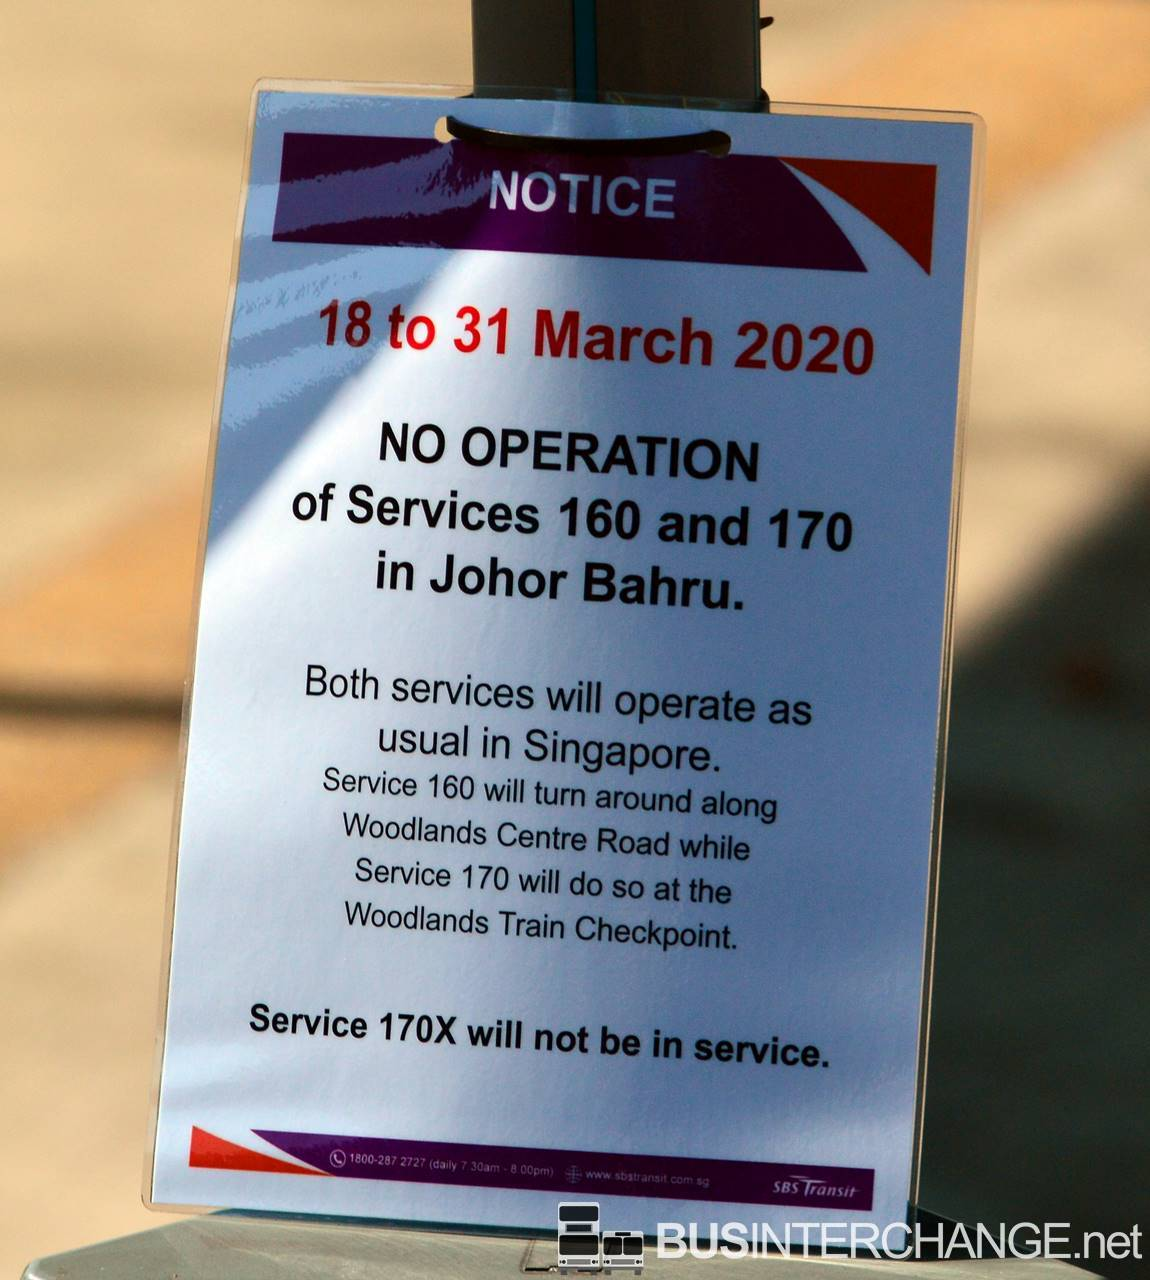 Initial on suspension of service into Johor Bahru from 18 March 2020 to 31 March 2020 for SBS Transit Bus 160, 170 & 170X